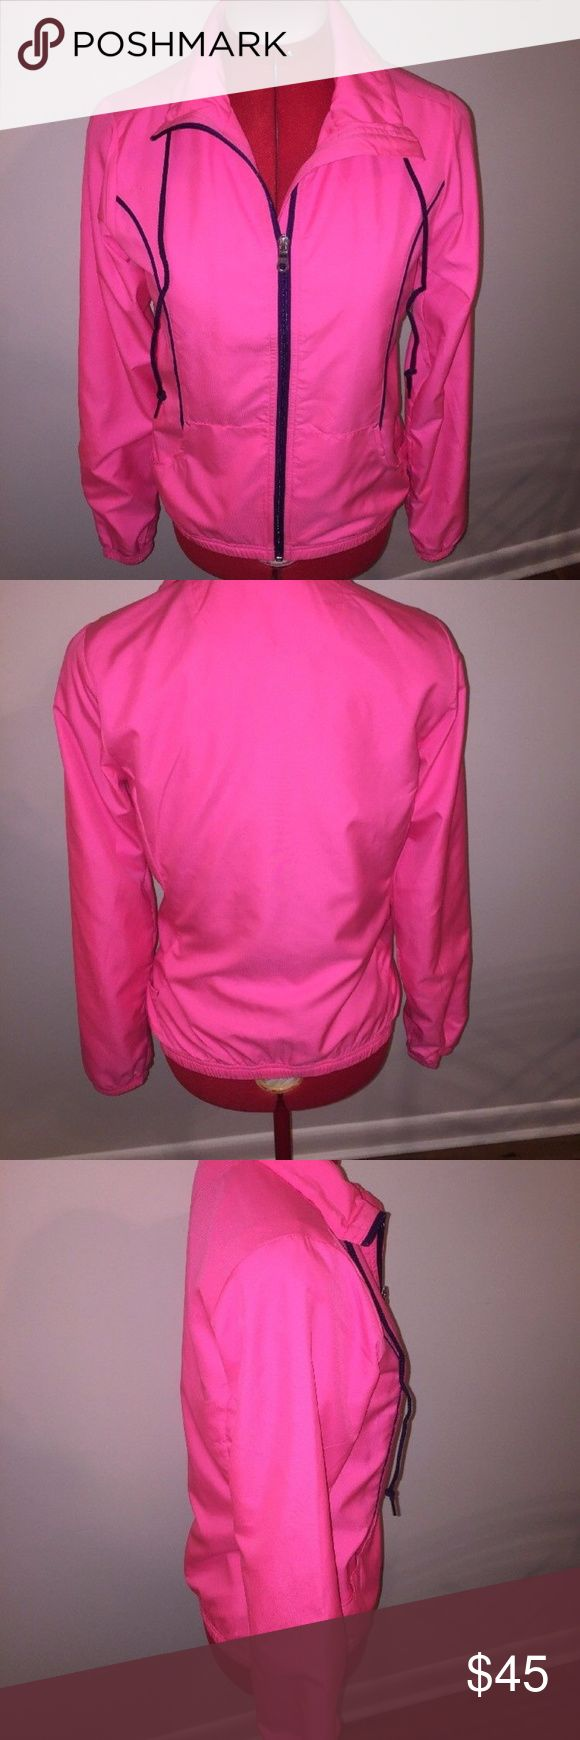 Reebox Pink Women's Zip Up Jacket Size XS Reebox Pink Women's Zip Up Jacket Size XS  Perfect condition Reebok Jackets & Coats